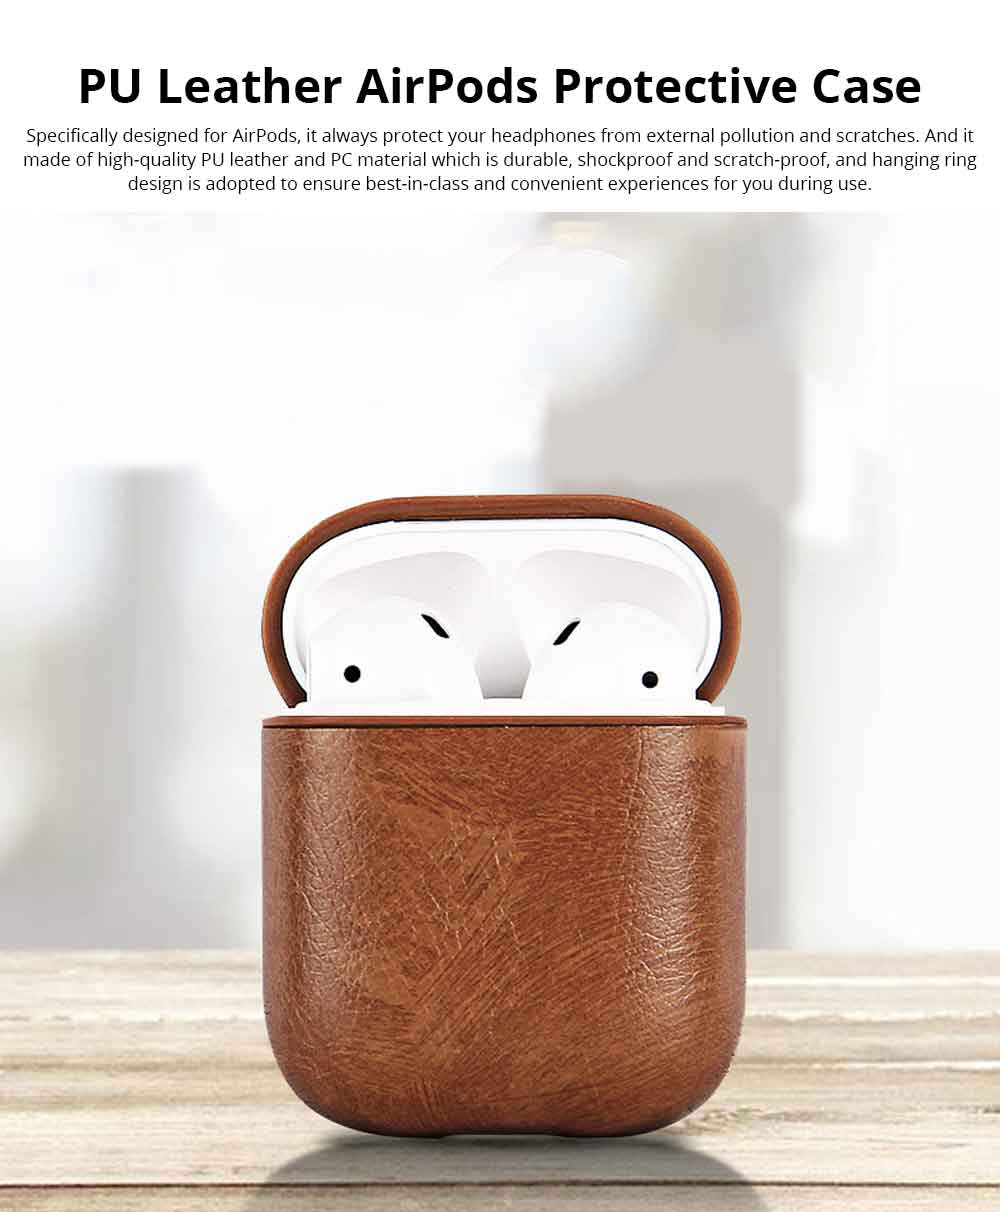 Luxury Leather Airpods Cover Strap Shockproof for Bluetooth Earphones, Minimalist Airpods Sleeve Pouch Cover Case with Hanging Ring 0